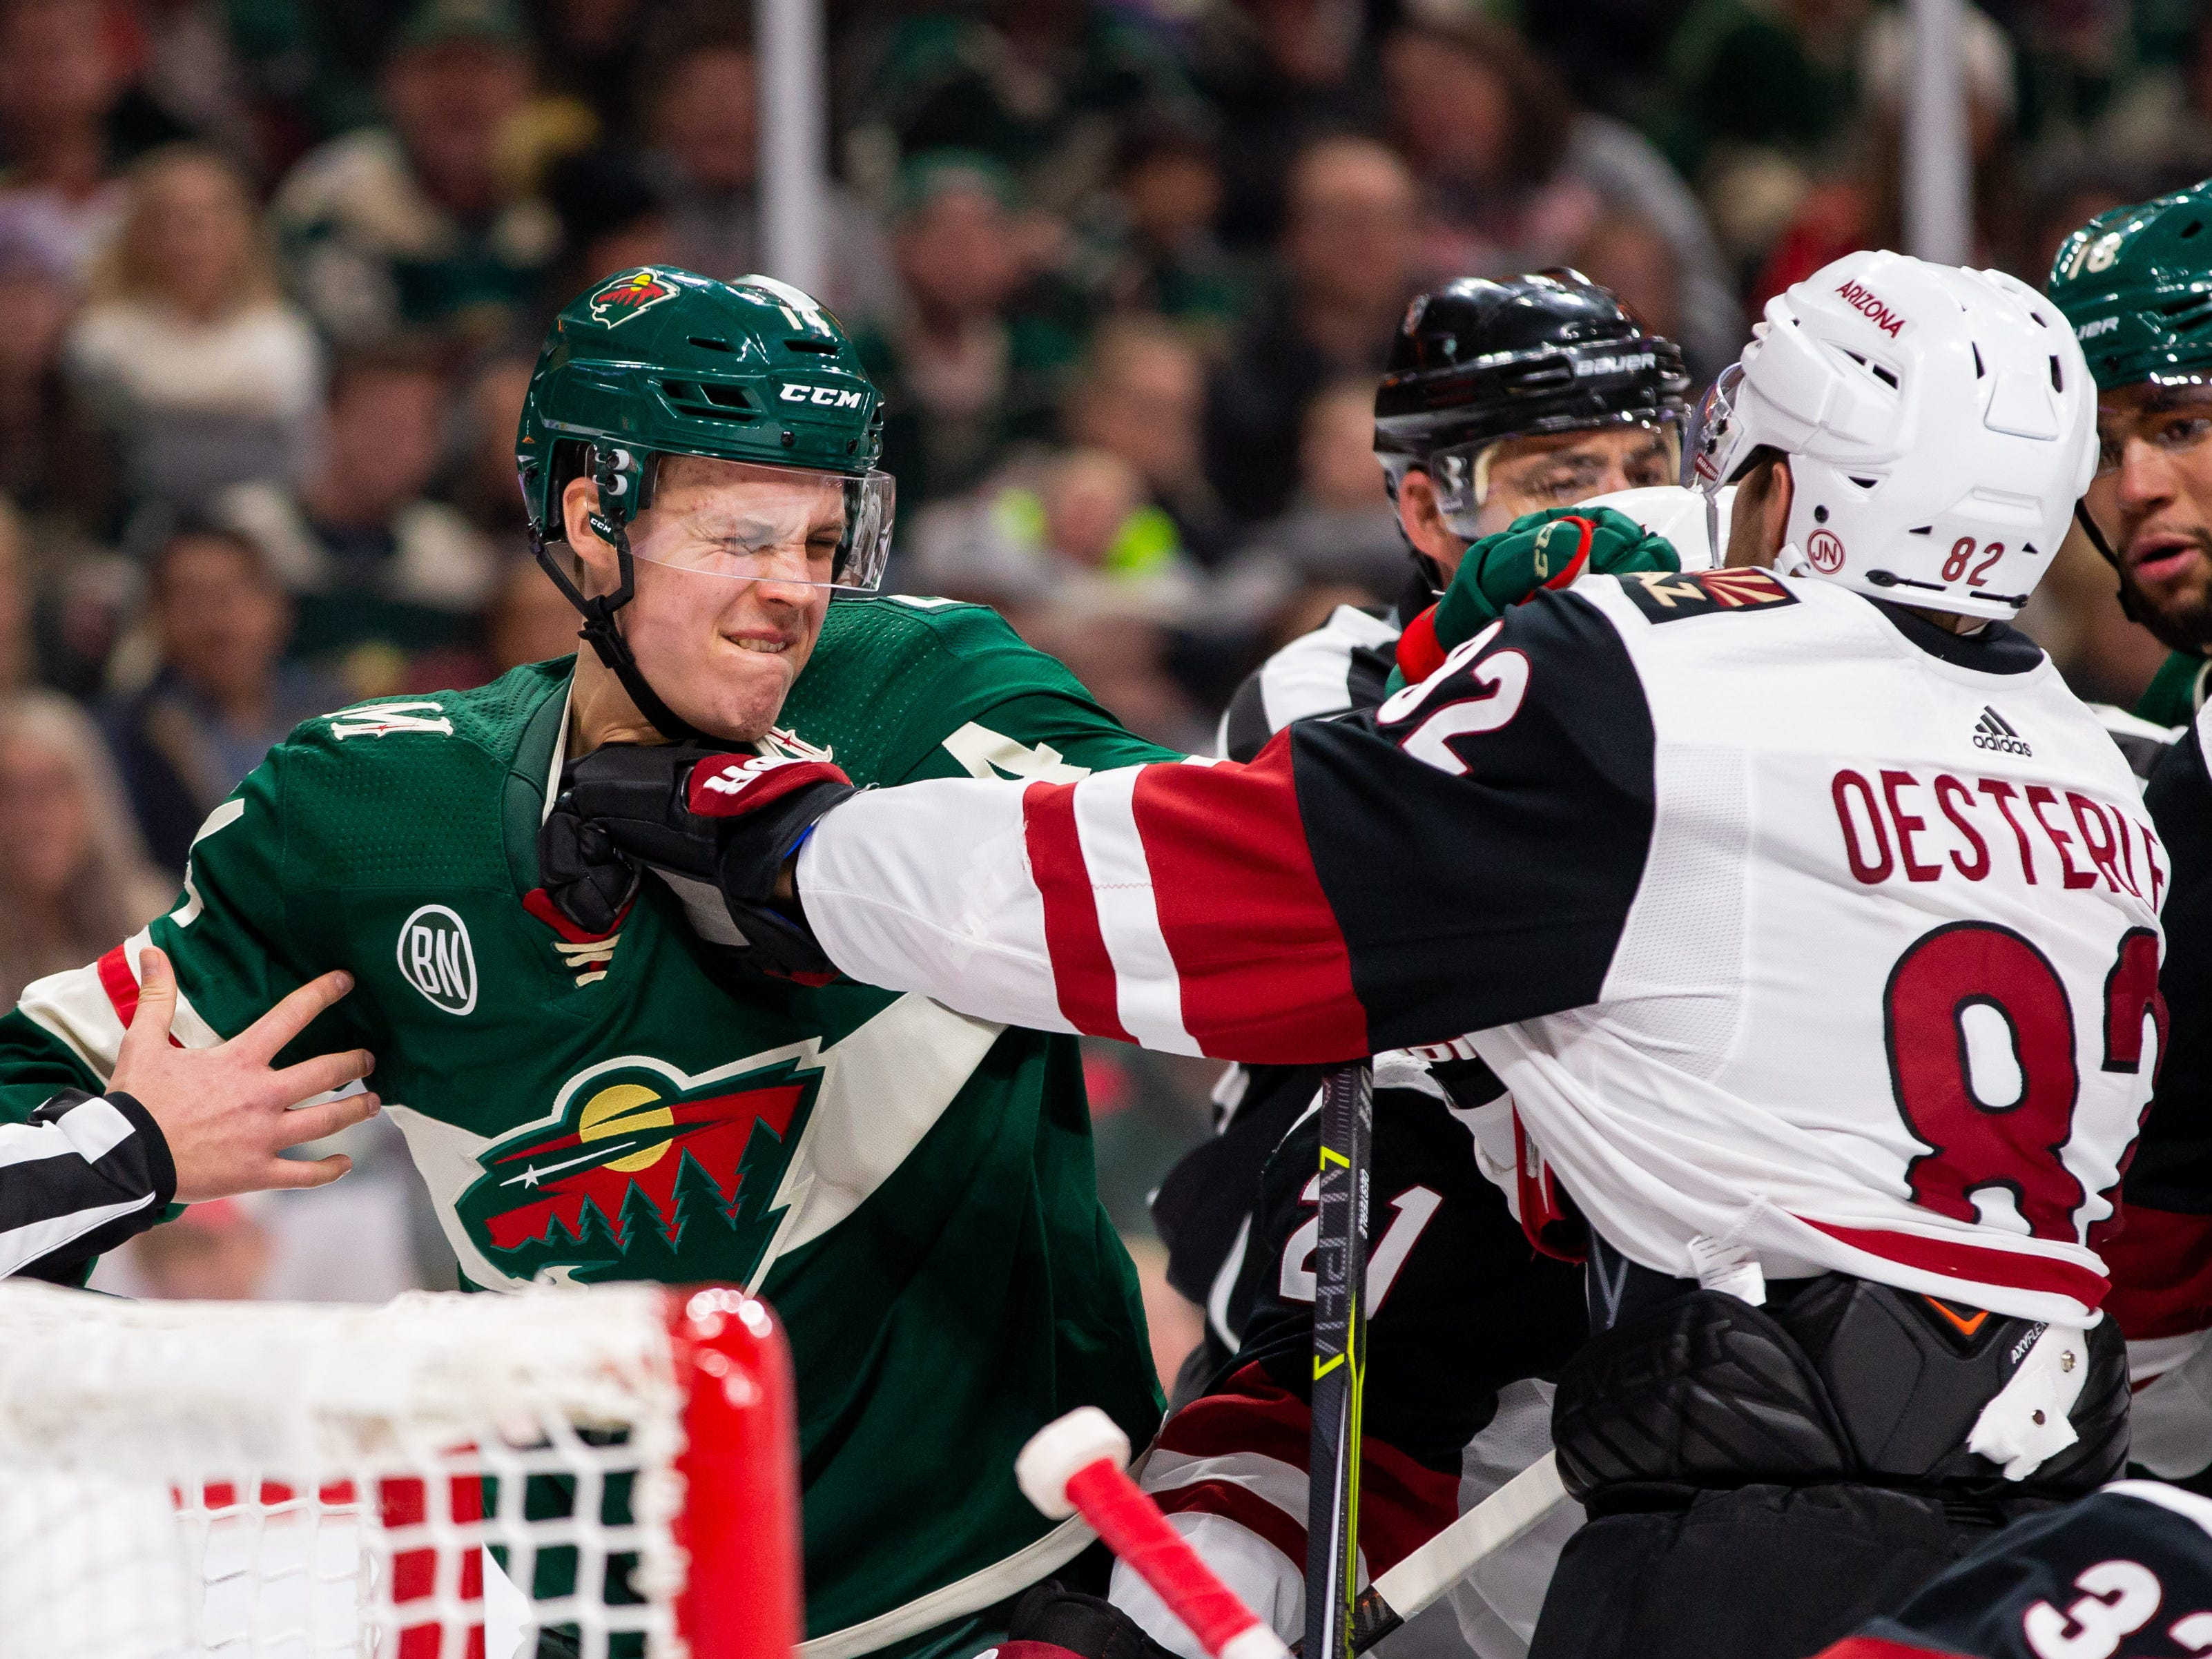 Nov 27, 2018; Saint Paul, MN, USA; Minnesota Wild forward Joel Eriksson Ek (14) and Phoenix Coyotes defenseman Jordan Oesterle (82) push after the whistle in the second period at Xcel Energy Center. Mandatory Credit: Brad Rempel-USA TODAY Sports